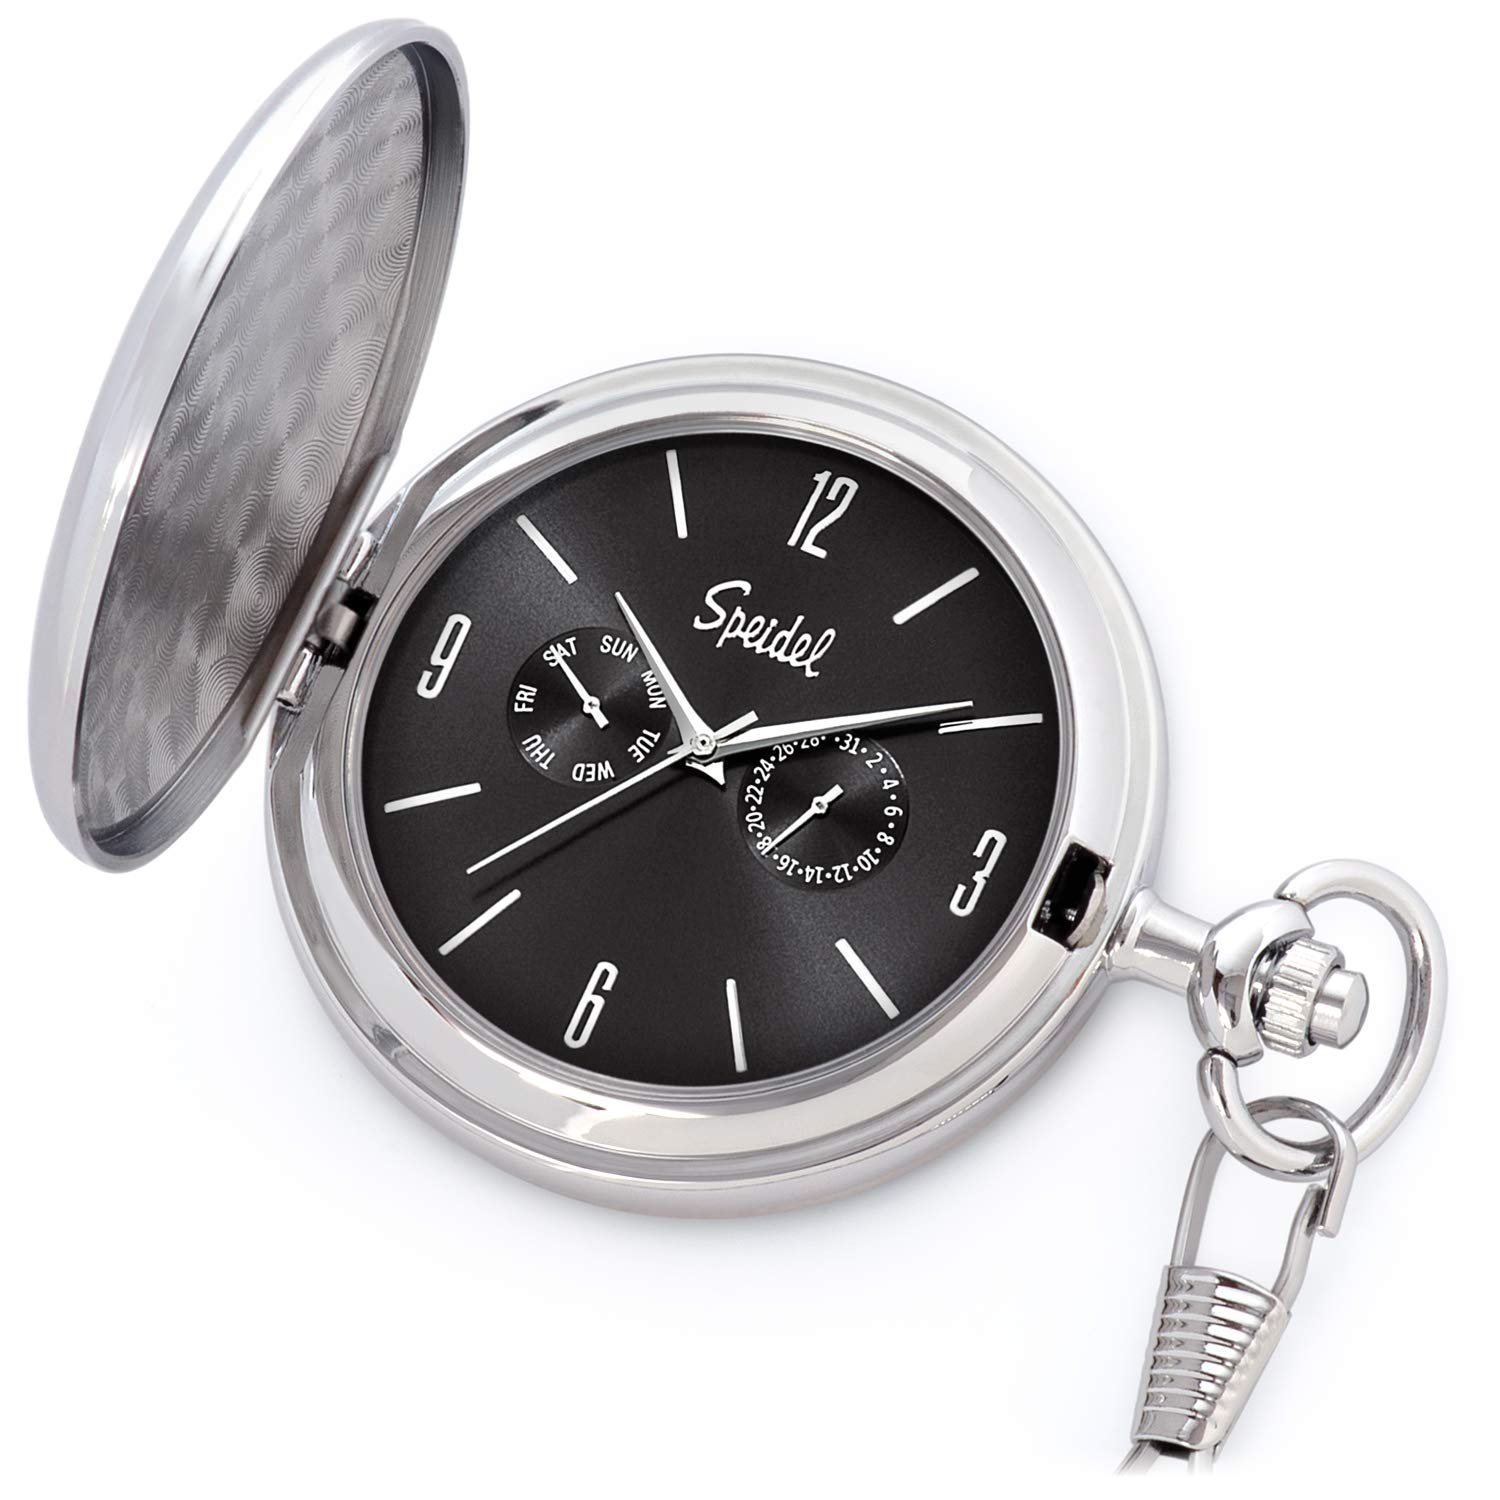 Speidel Classic Brushed Satin Silver-Tone Engravable Pocket Watch with 14'' Chain, Black Dial, Seconds Hand, Day and Date Sub-Dials